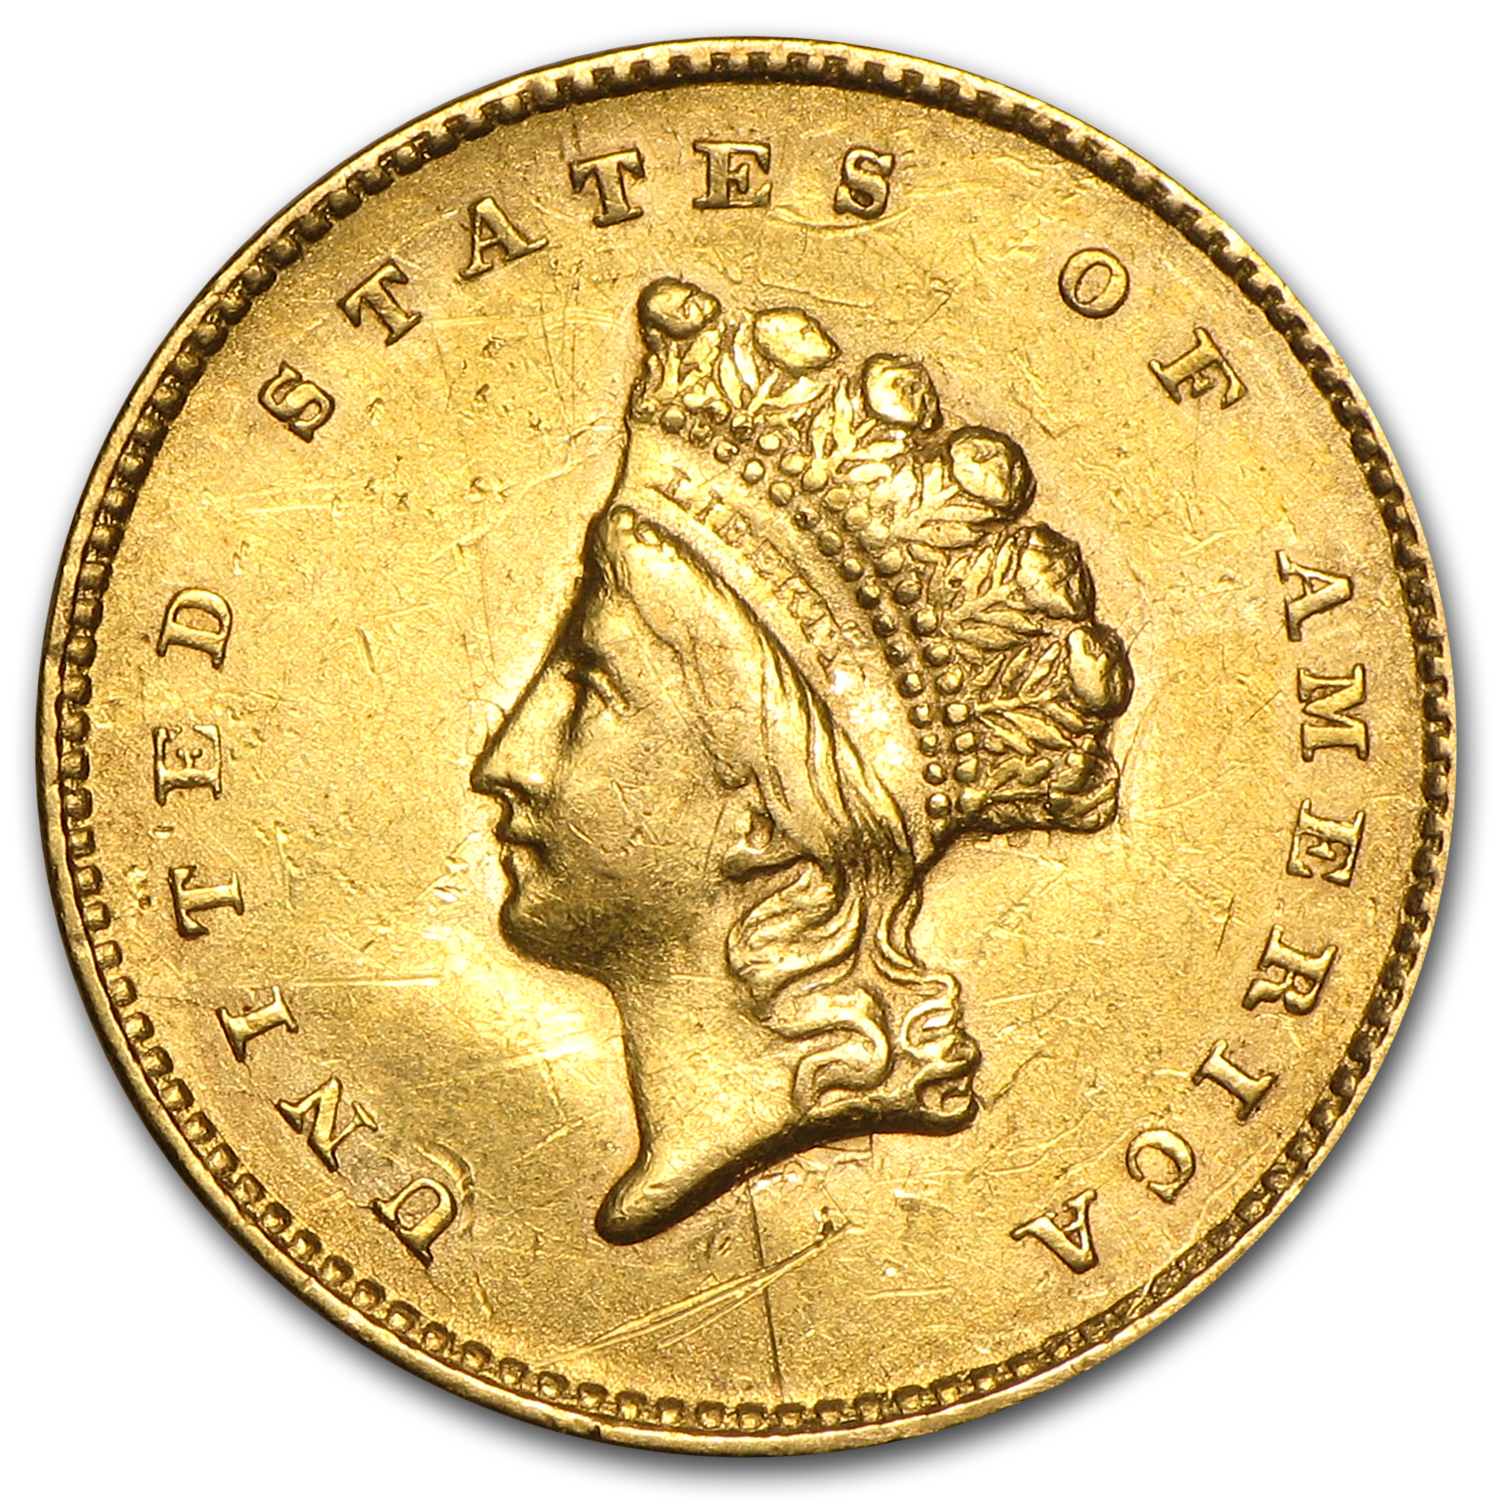 $1 Indian Head Gold - Type 2 - Cleaned